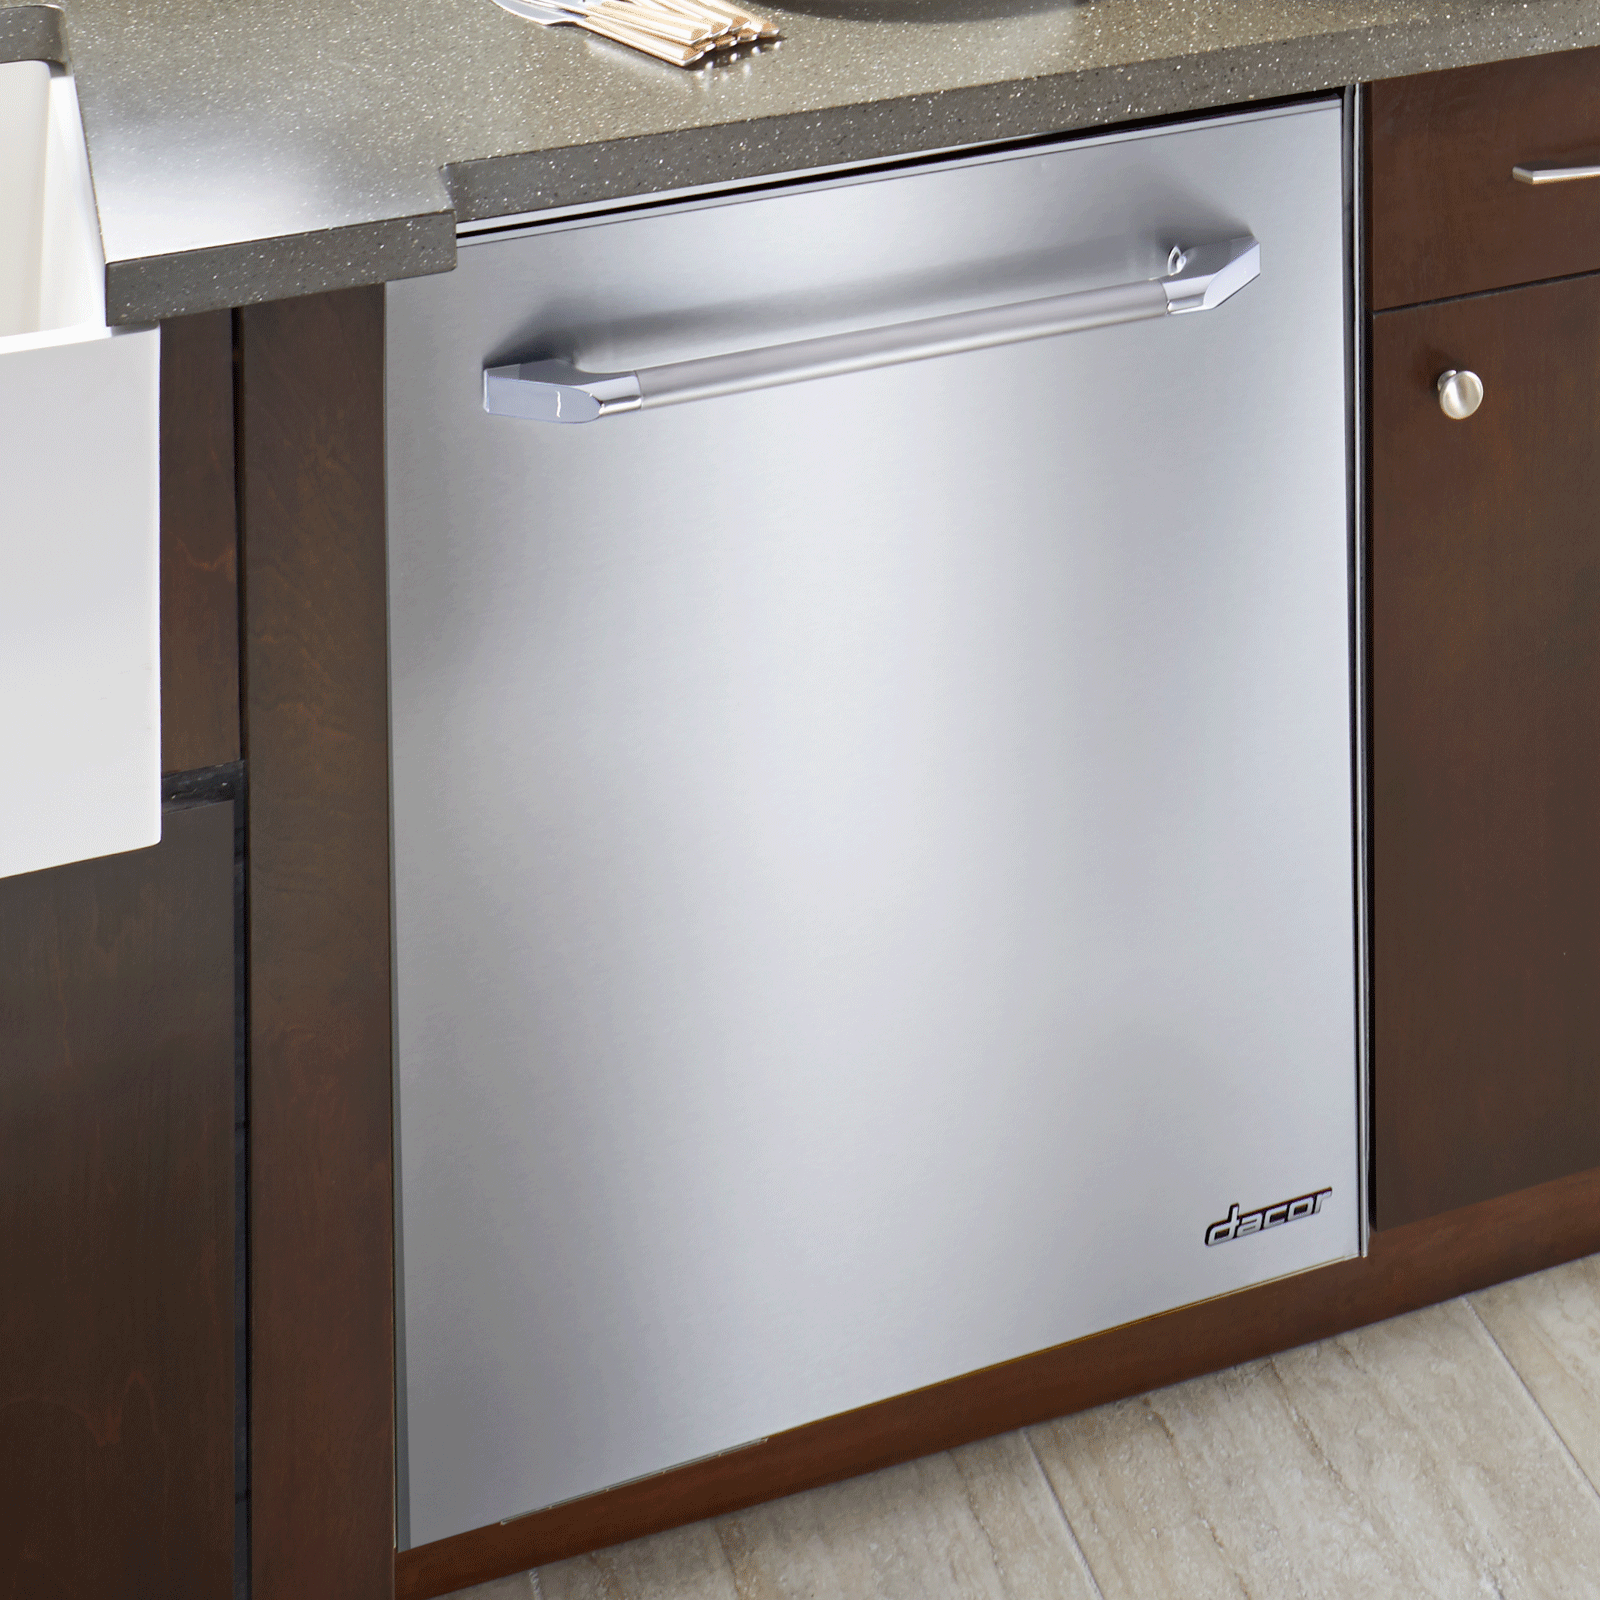 "Dacor Heritage 24"" Dishwasher, in Stainless Steel."